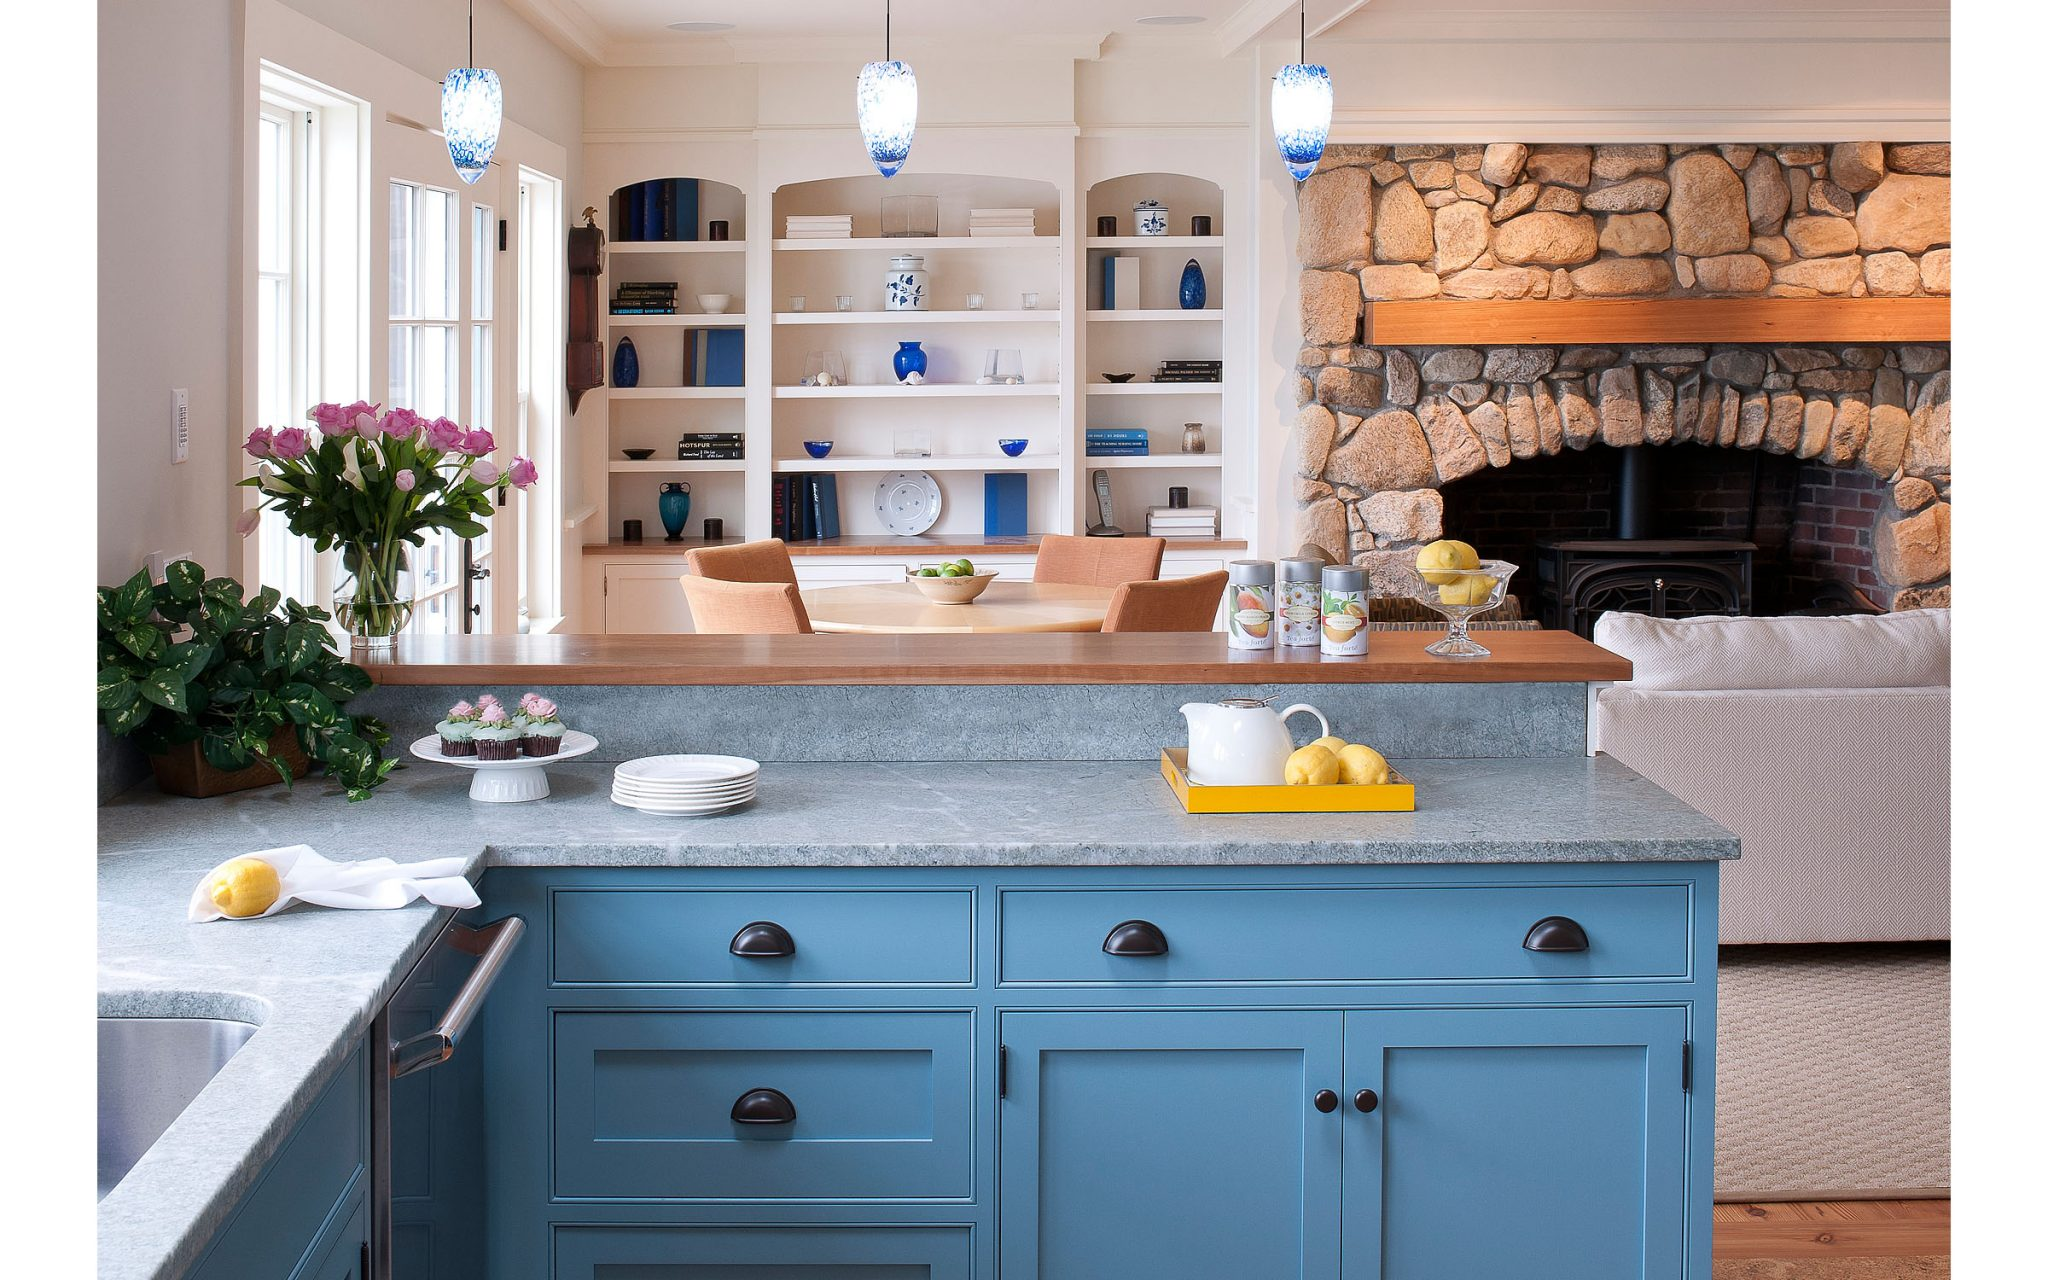 Colorful Kitchen Design Ideas 1 from Boston interior designer Elizabeth Swartz Interiors.